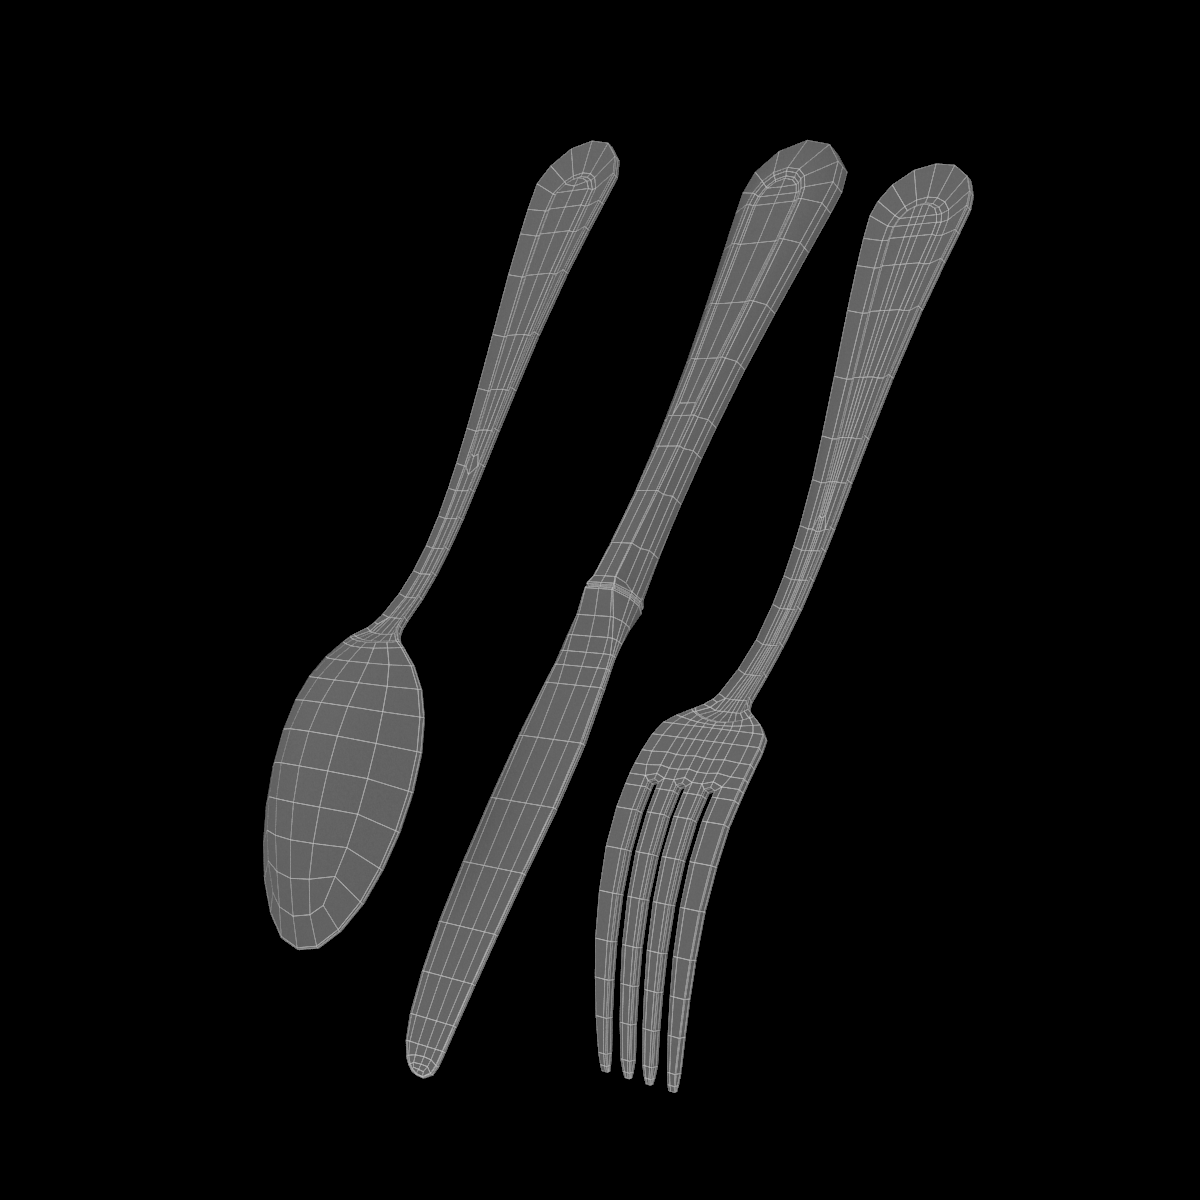 table dinner knife, fork, spoon classic cutlery 3d model 3ds max fbx c4d ma mb  obj 284631